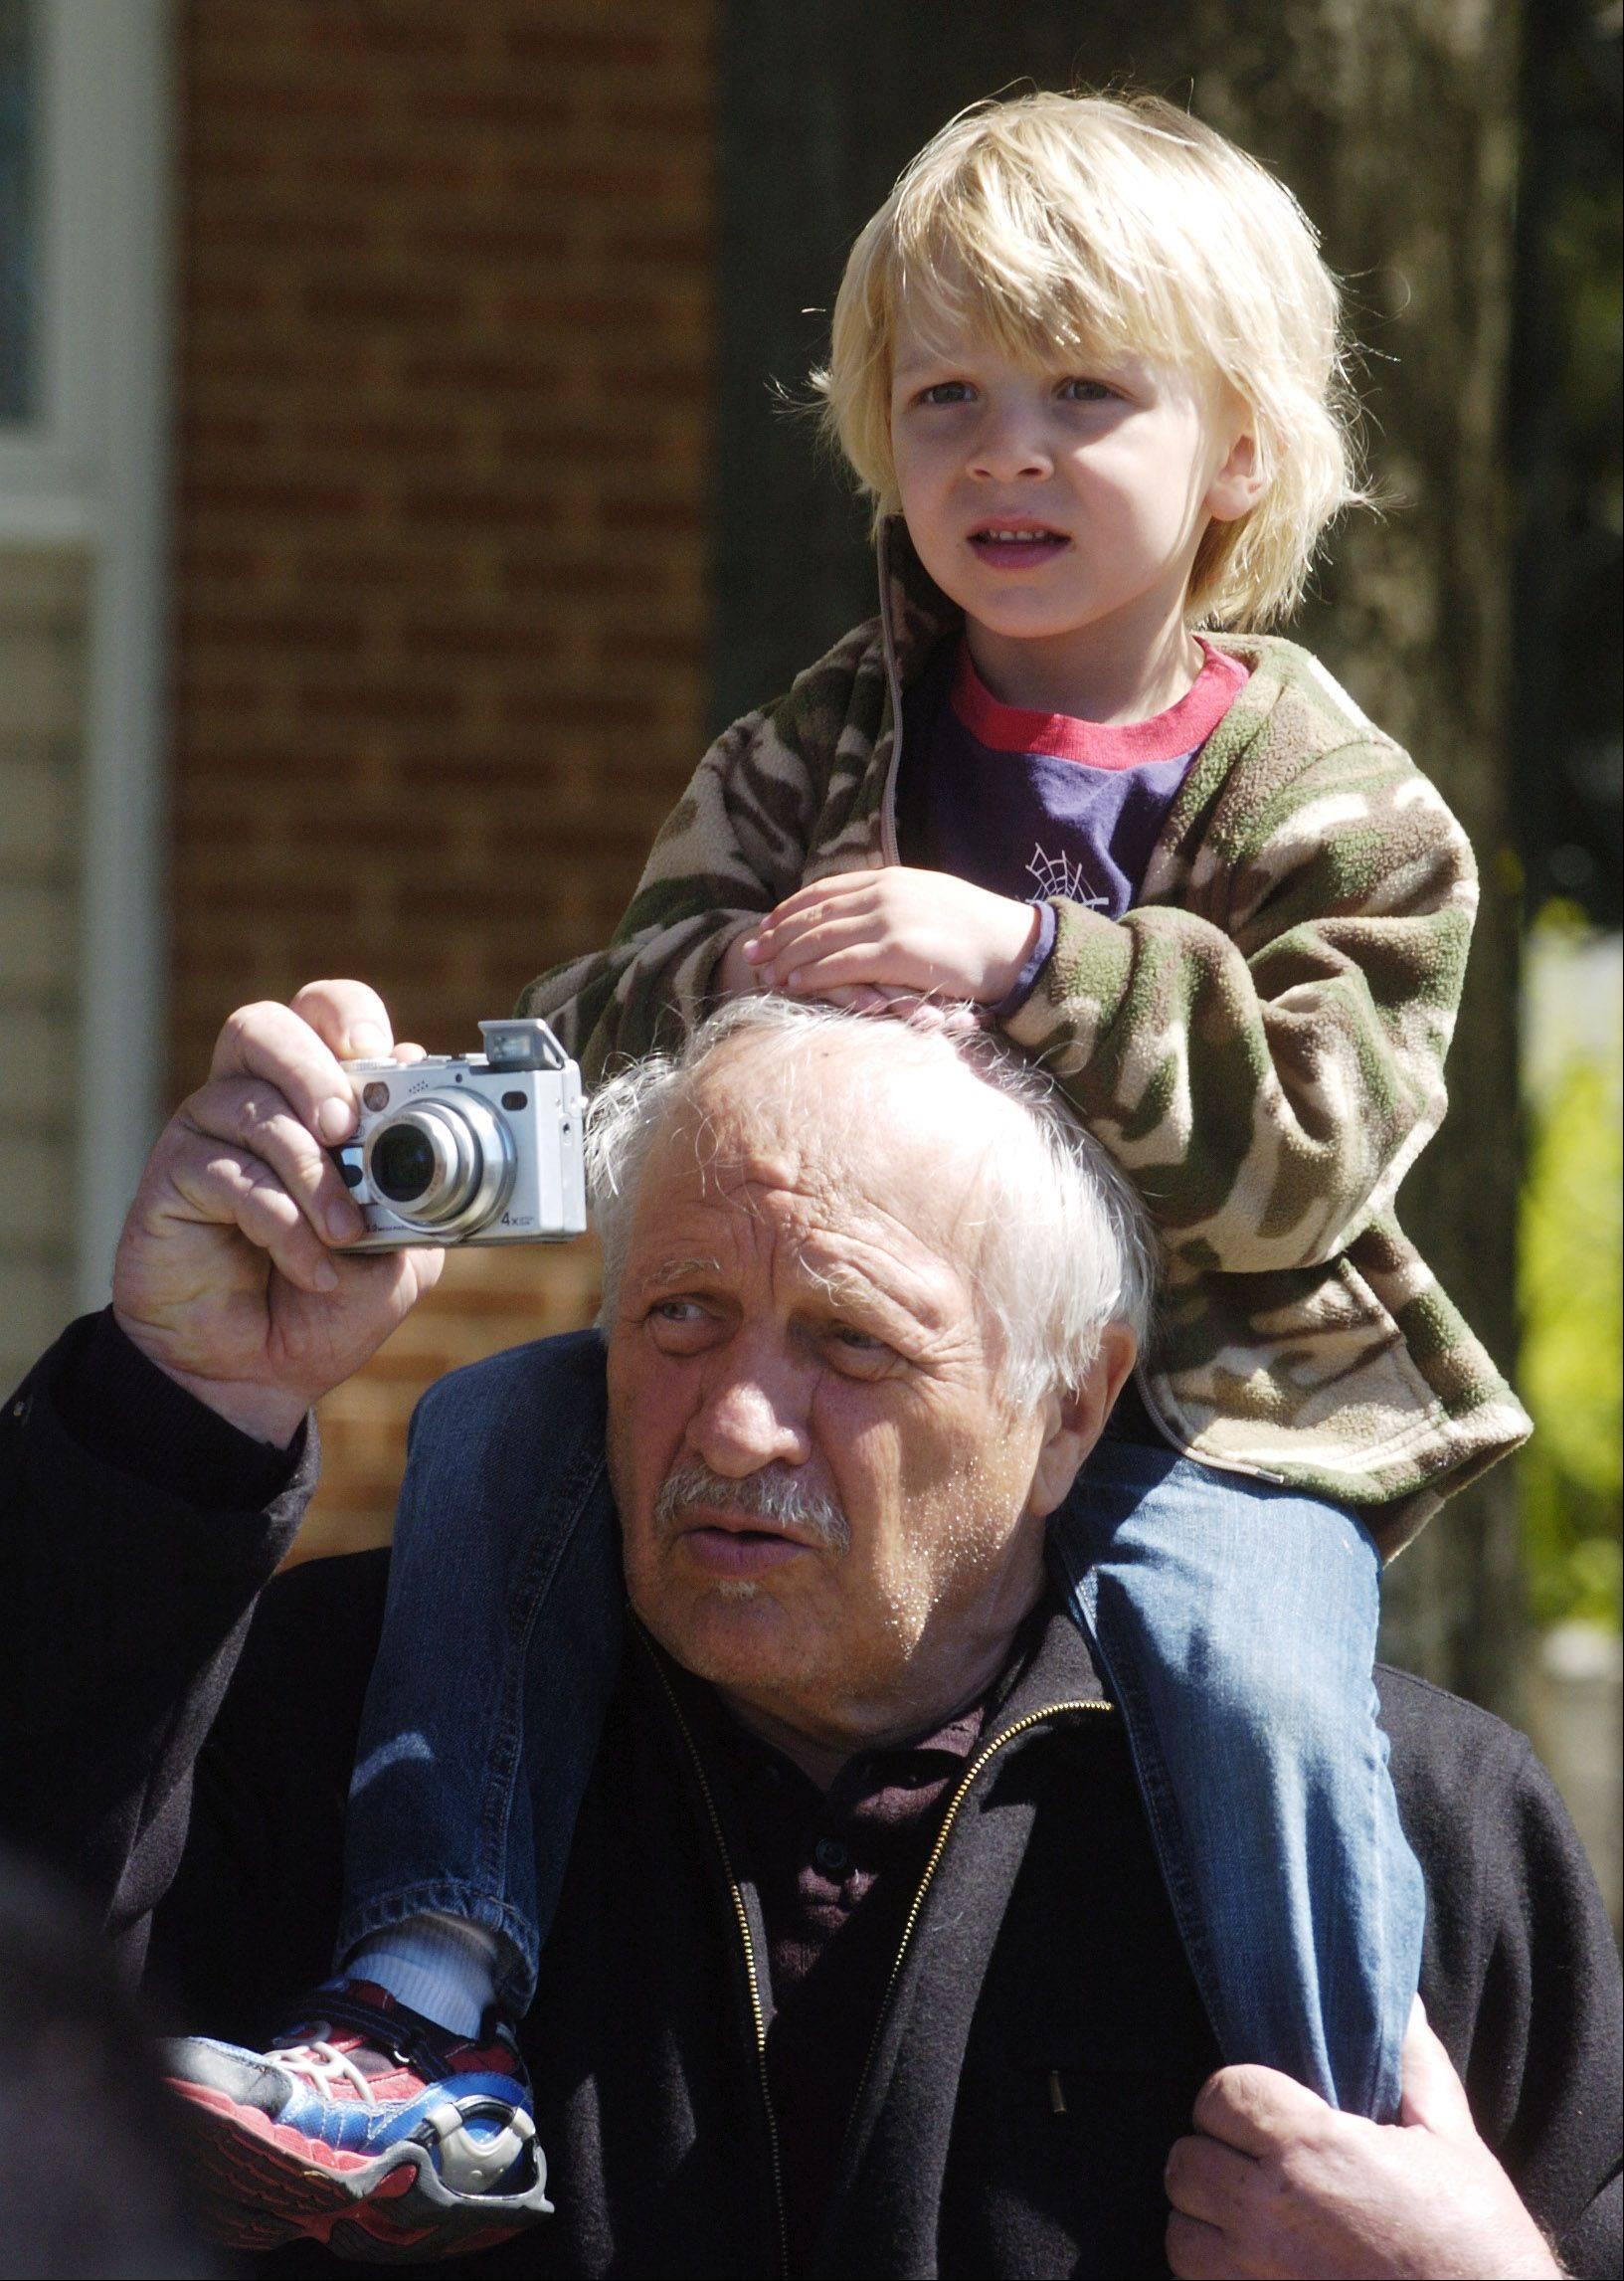 Stefan Smolak, 4, of Palatine, rests on the shoulders of his grandfather George Smolak of Arlington Heights as George takes a picture during the live Way of the Cross procession between St. Thomas of Villanova in Palatine and Mission San Juan Diego in Arlington Heights on Good Friday.